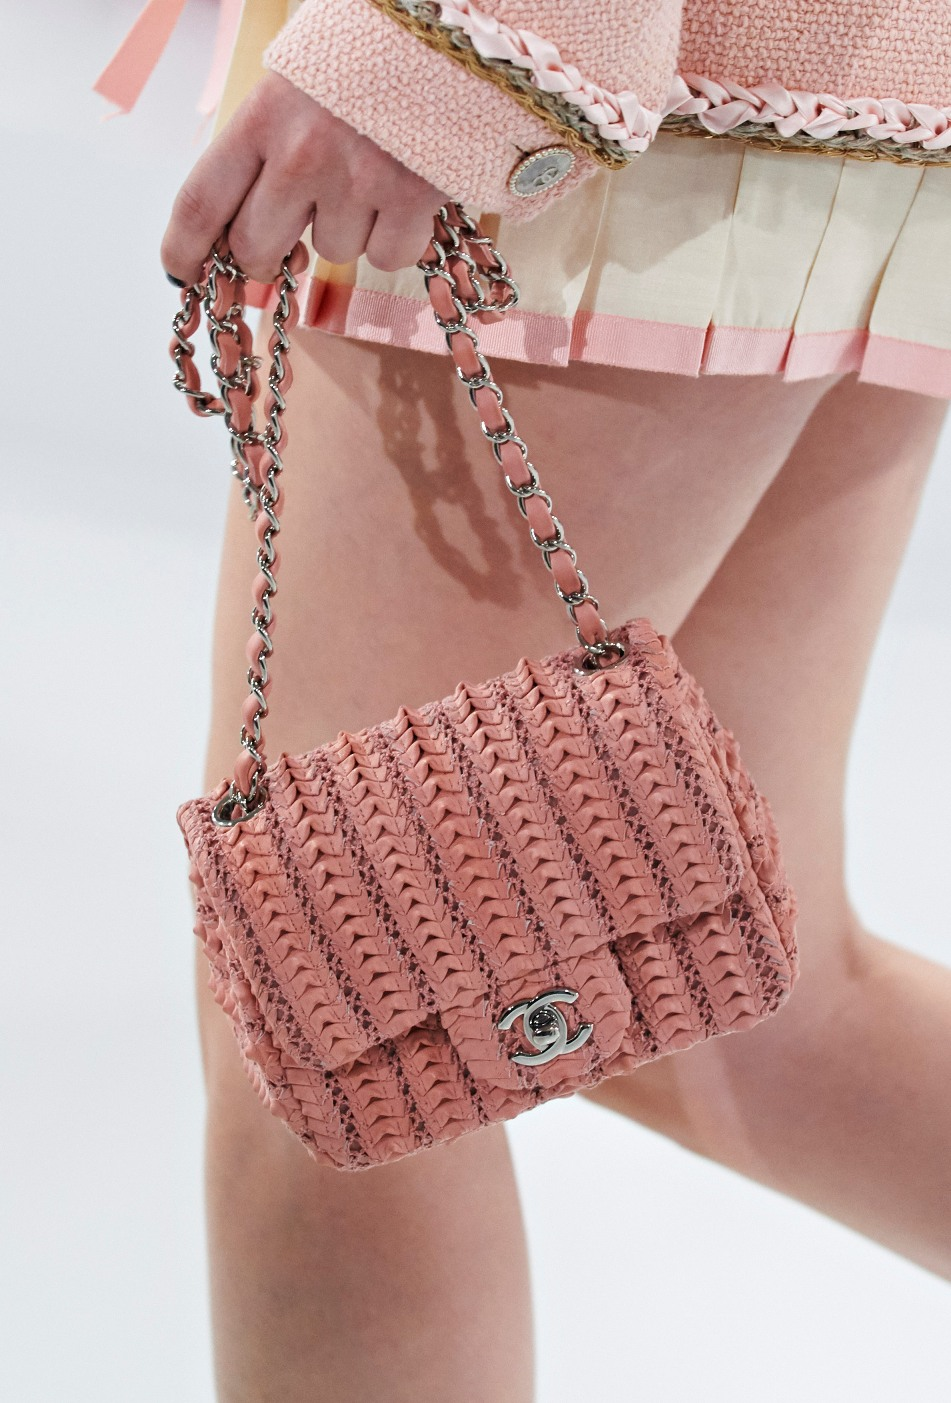 Chanel Seoul Resort Cruise 2016 Bags Accessories 18